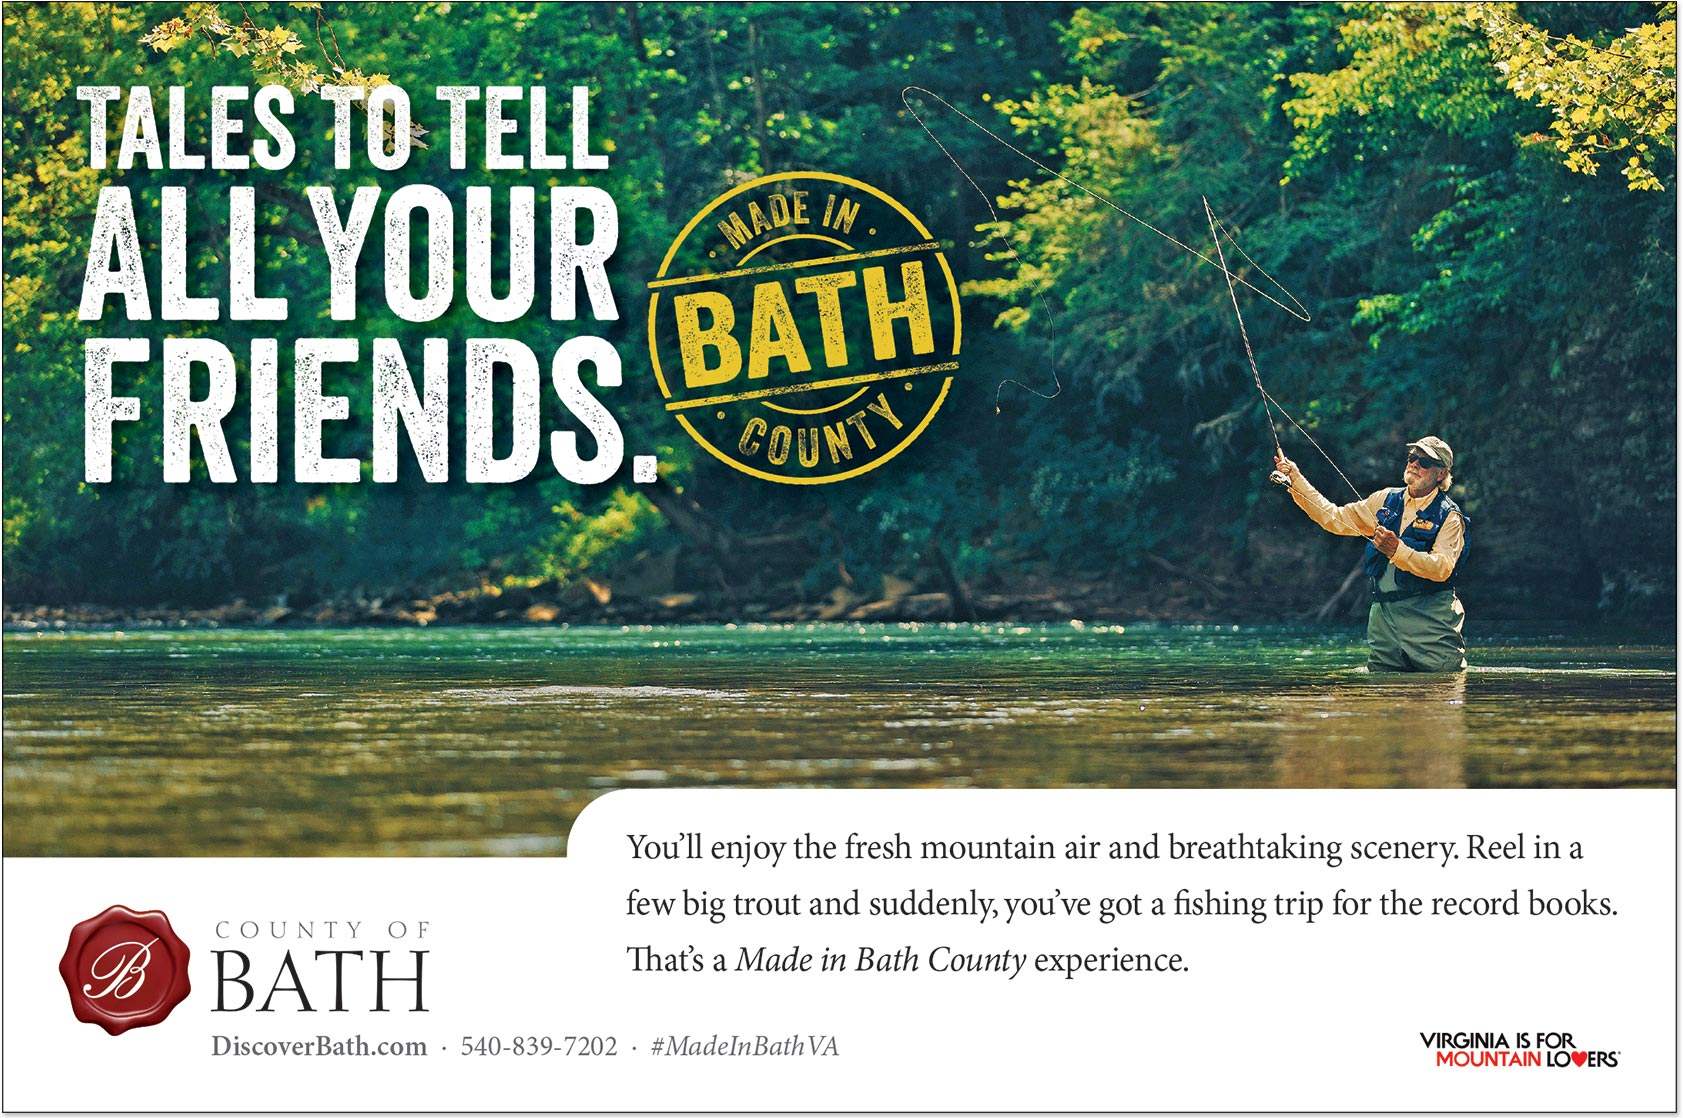 Bath County Tales to Tell All Your Friends Ad